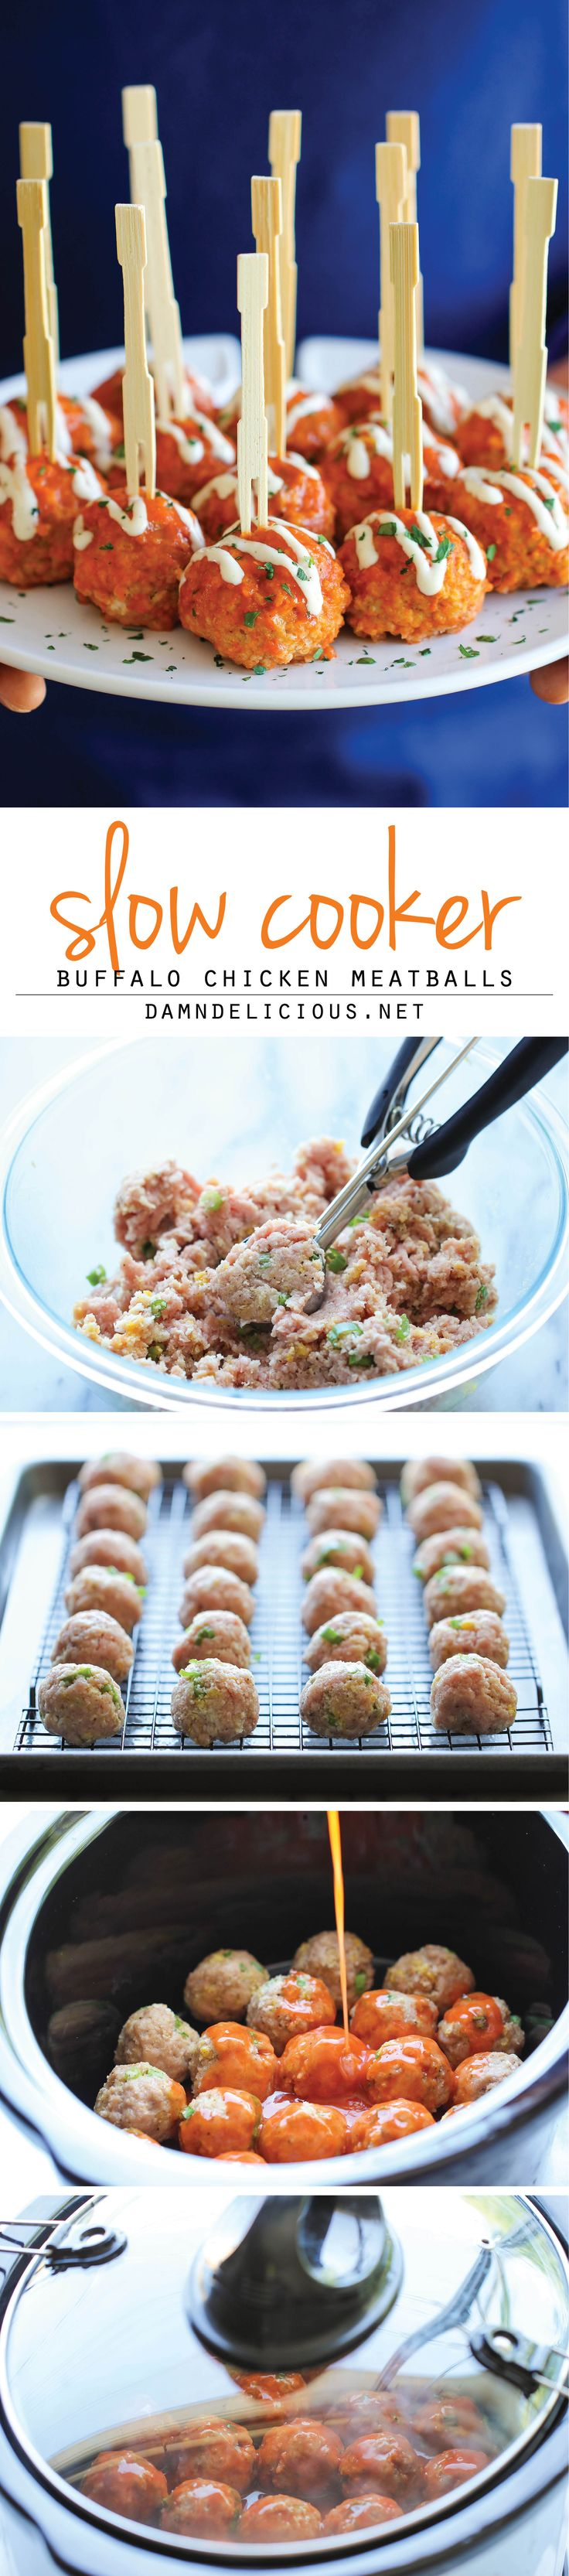 Slow Cooker Buffalo Chicken Meatballs - A lighter, healthier alternative to buffalo wings that you can make so easily right in the slow cooker! Minus the pano and blue cheese